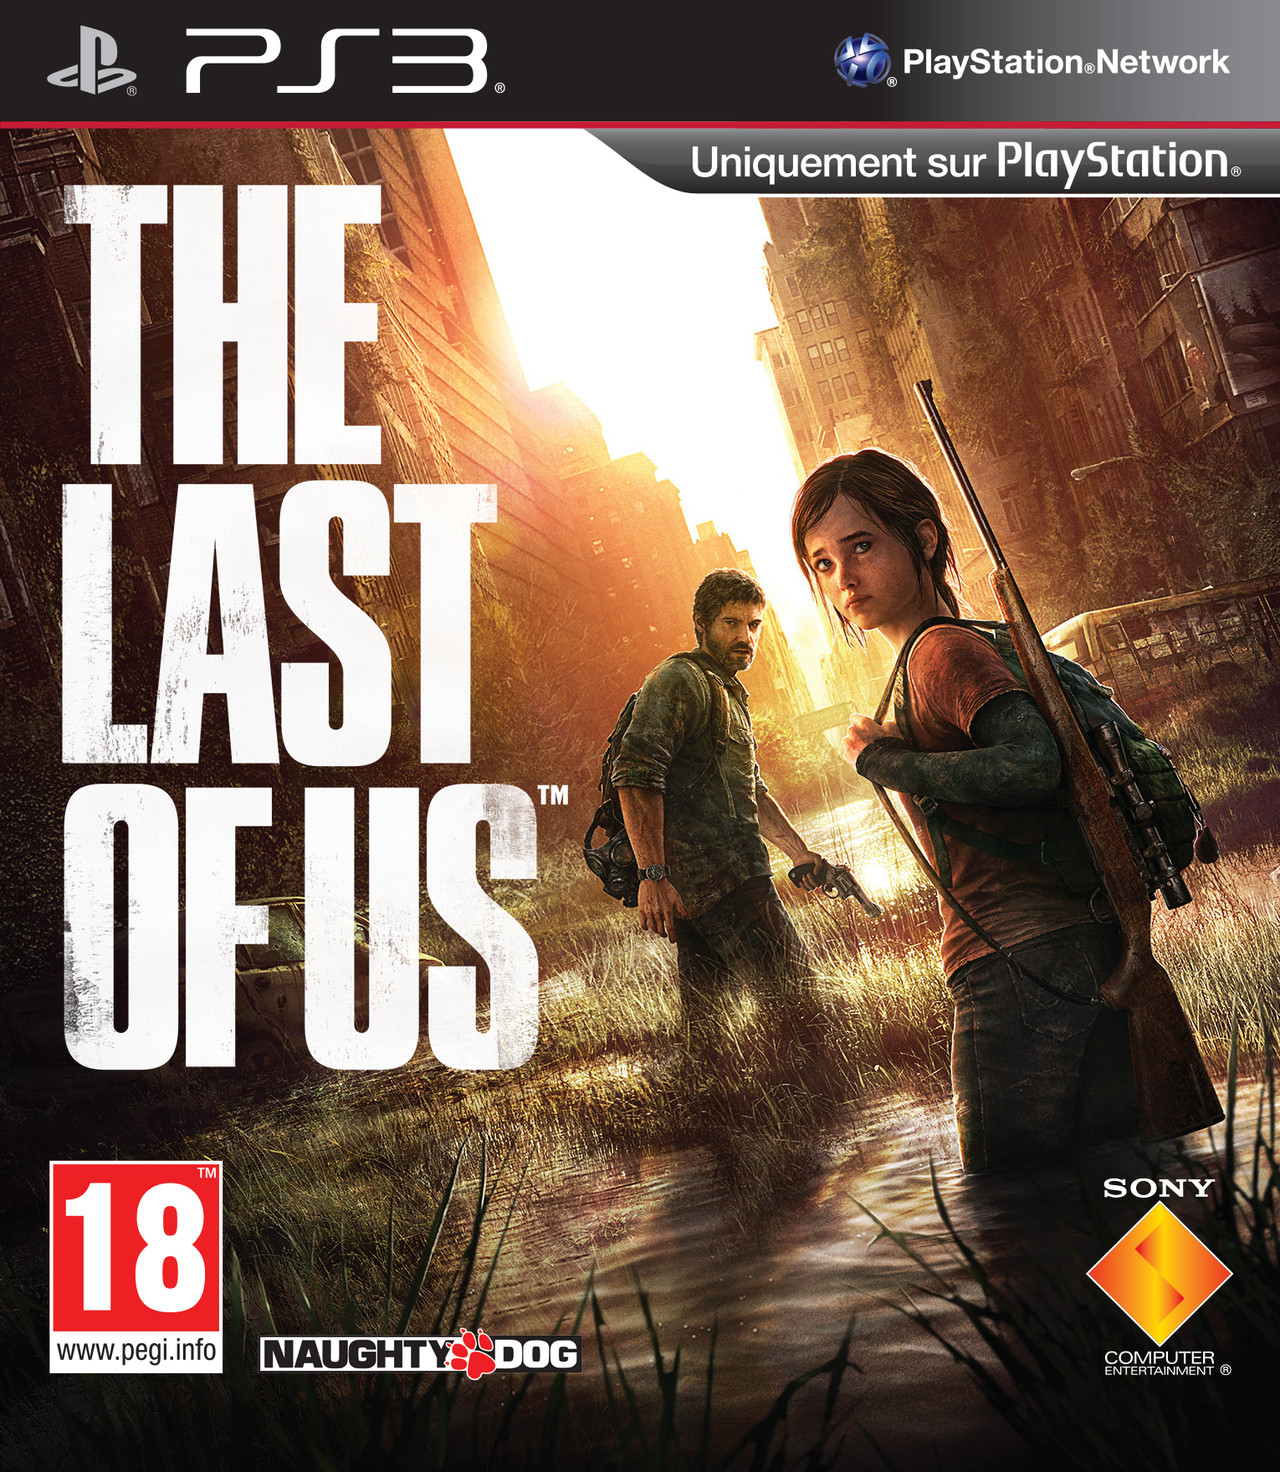 Vos jeux terminés en 2018 - Page 5 Jaquette-the-last-of-us-playstation-3-ps3-cover-avant-g-1355137960